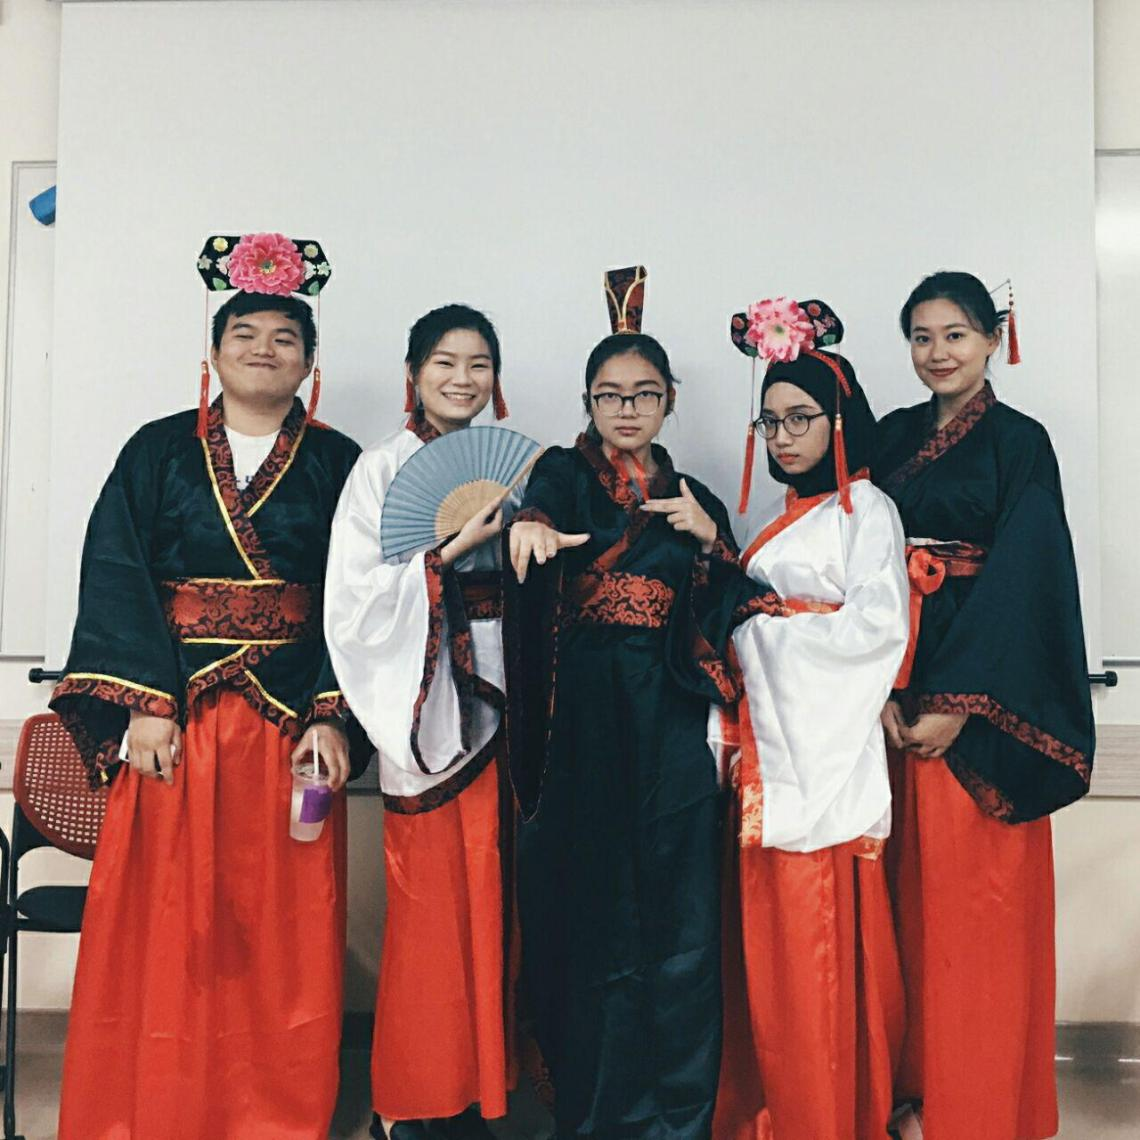 traditional Malay family - role playing as empress for NUS history module